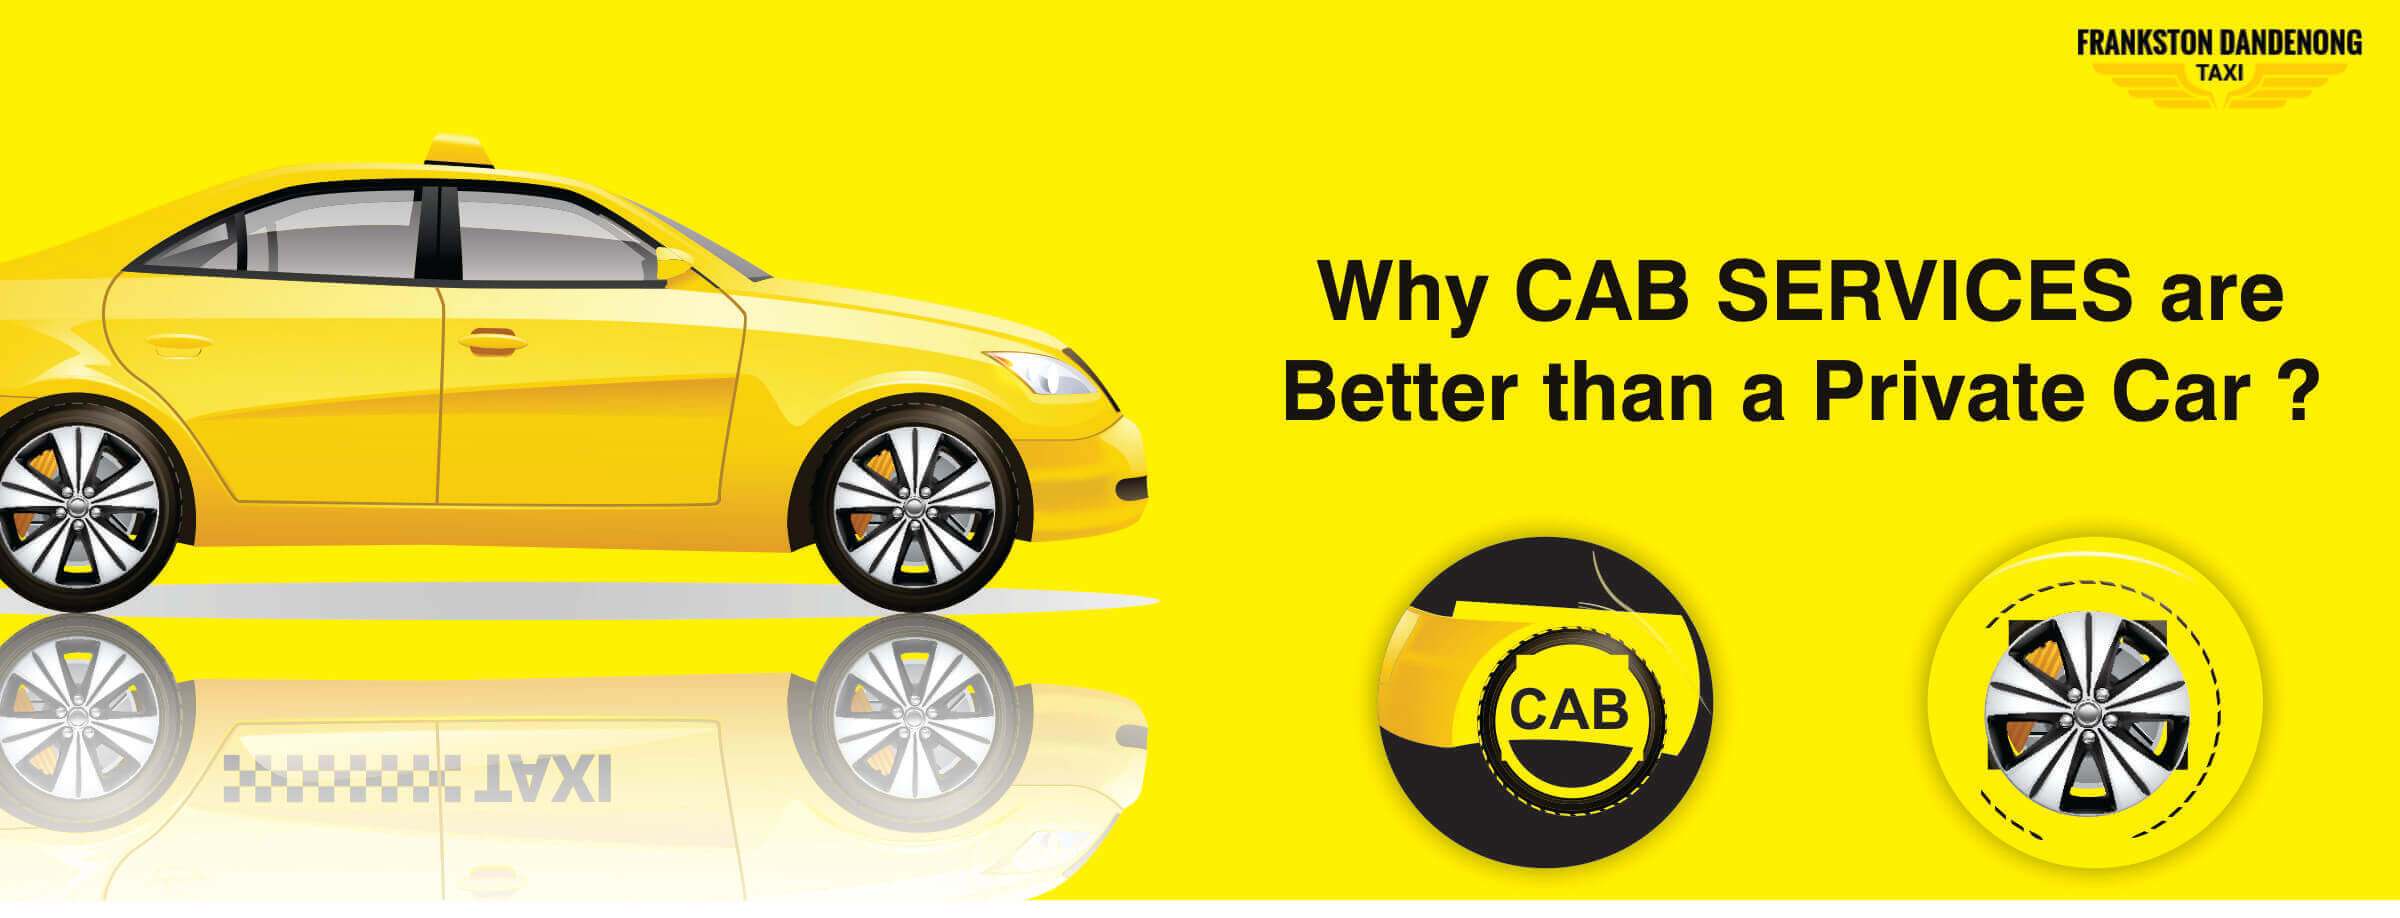 Why Cab Services are Better than a Private Car - Banner 2